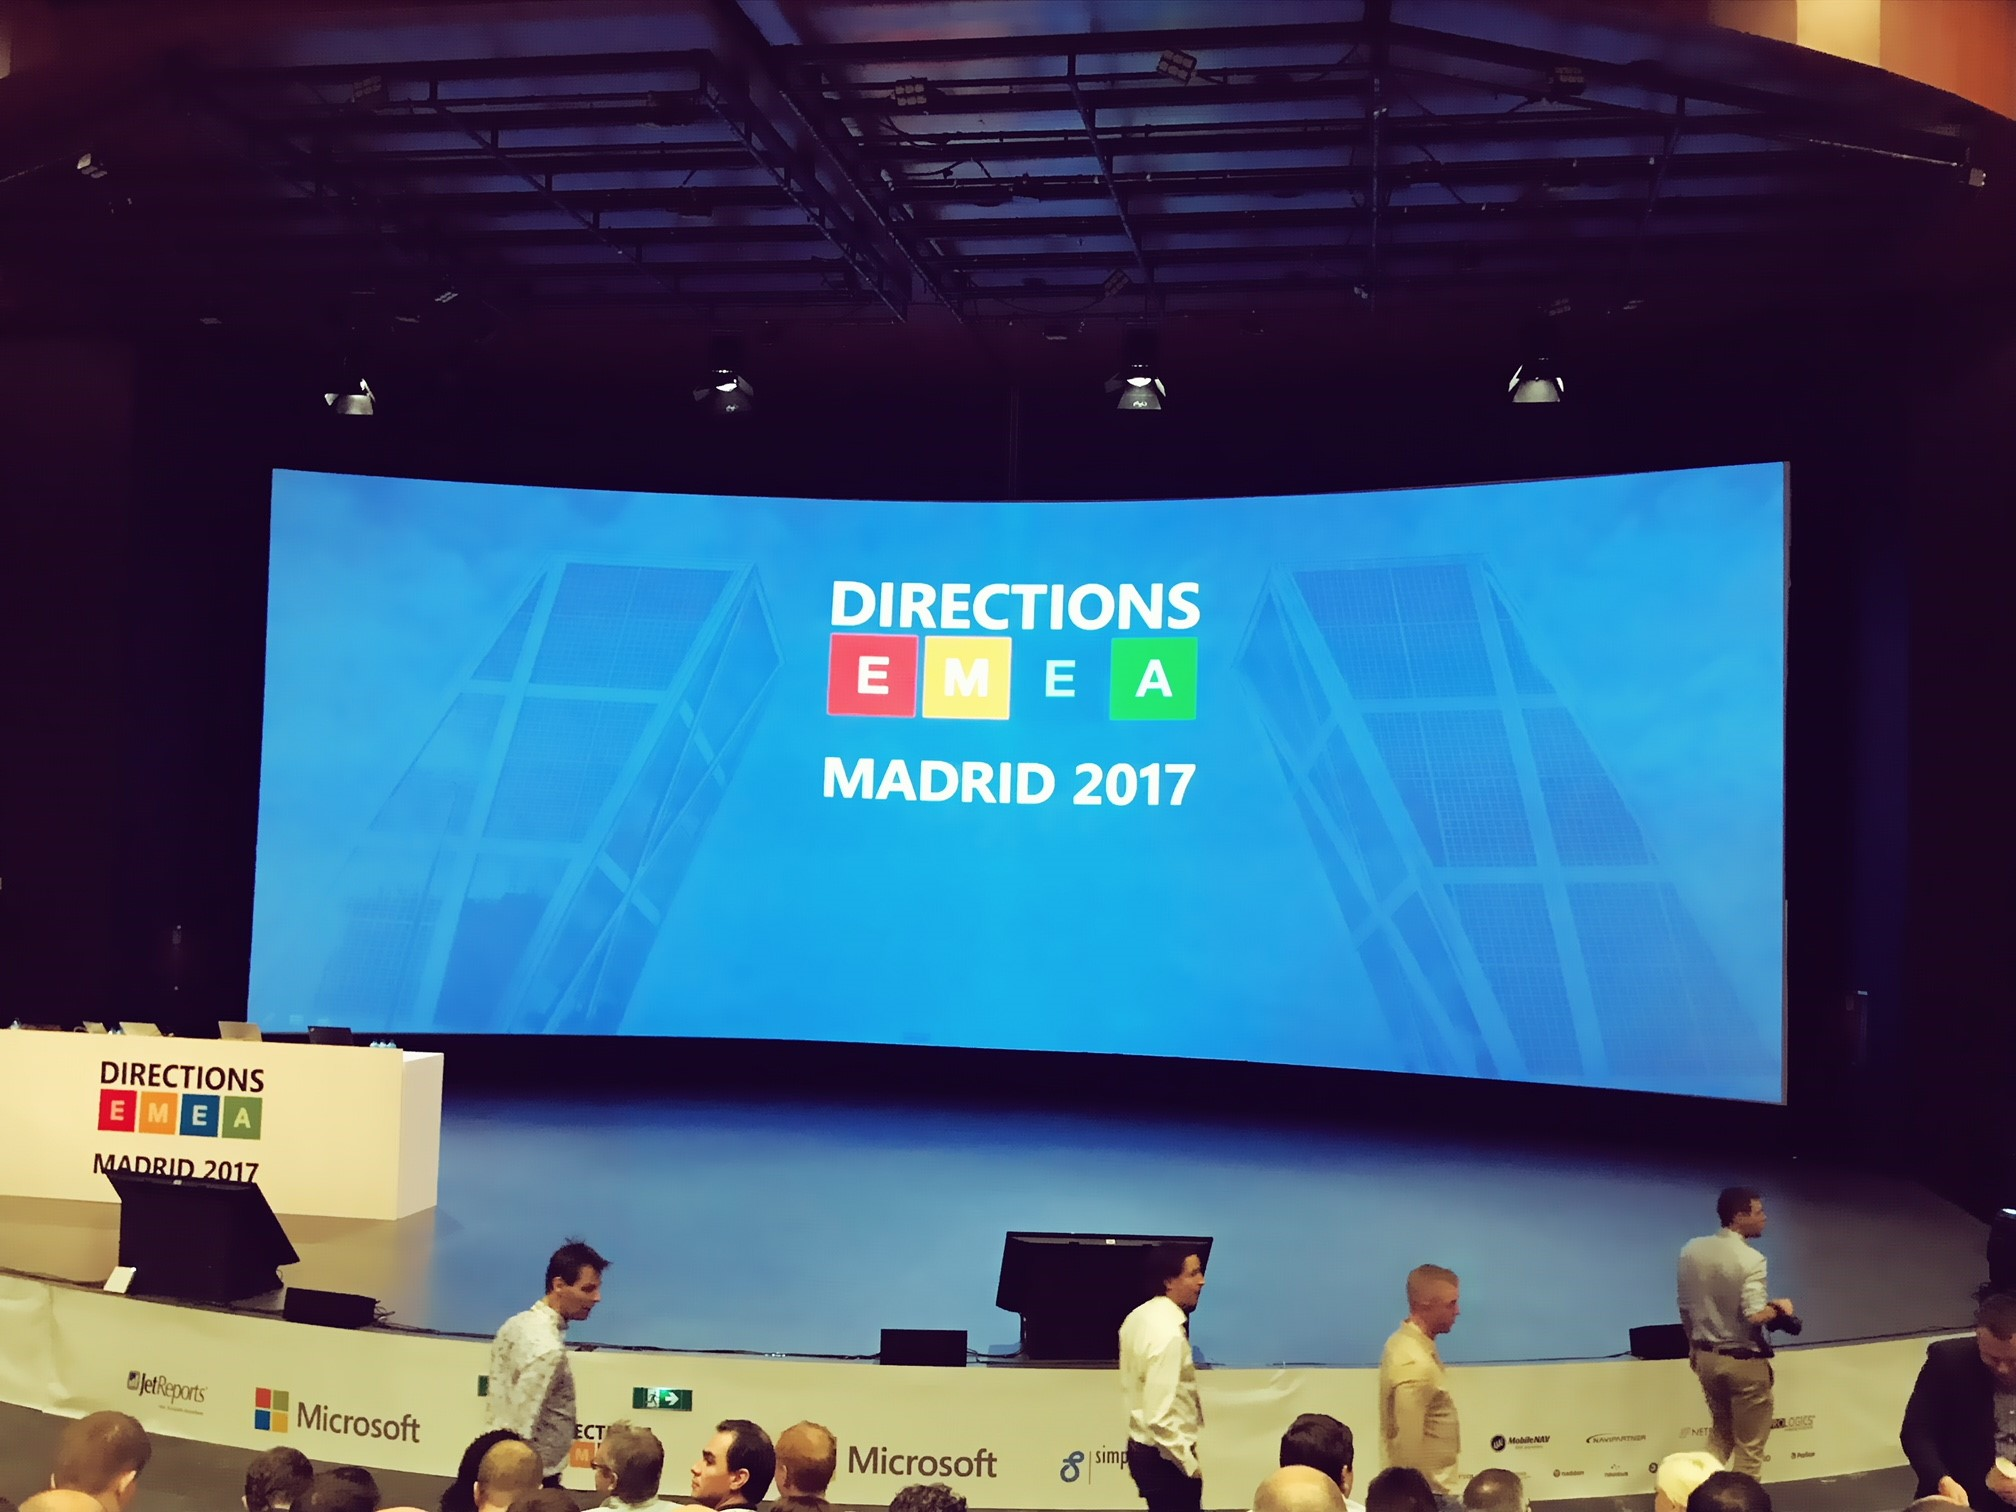 Directions EMEA Madrid